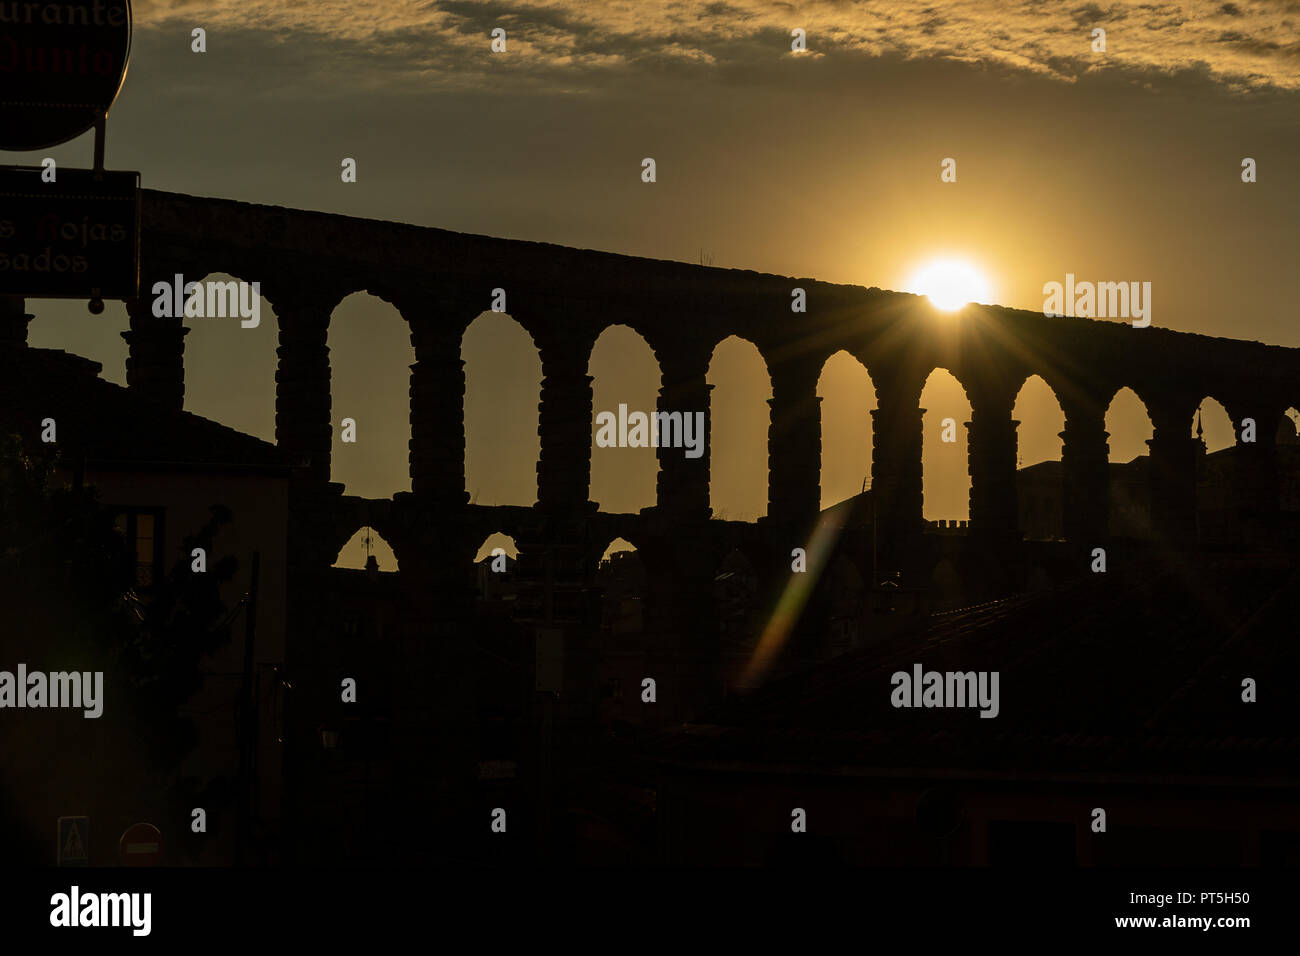 View of the famous Aqueduct of Segovia at Sunset. Roman construction of the 1st century. Travel concept. Spain, Castile and Leon, Segovia. - Stock Image